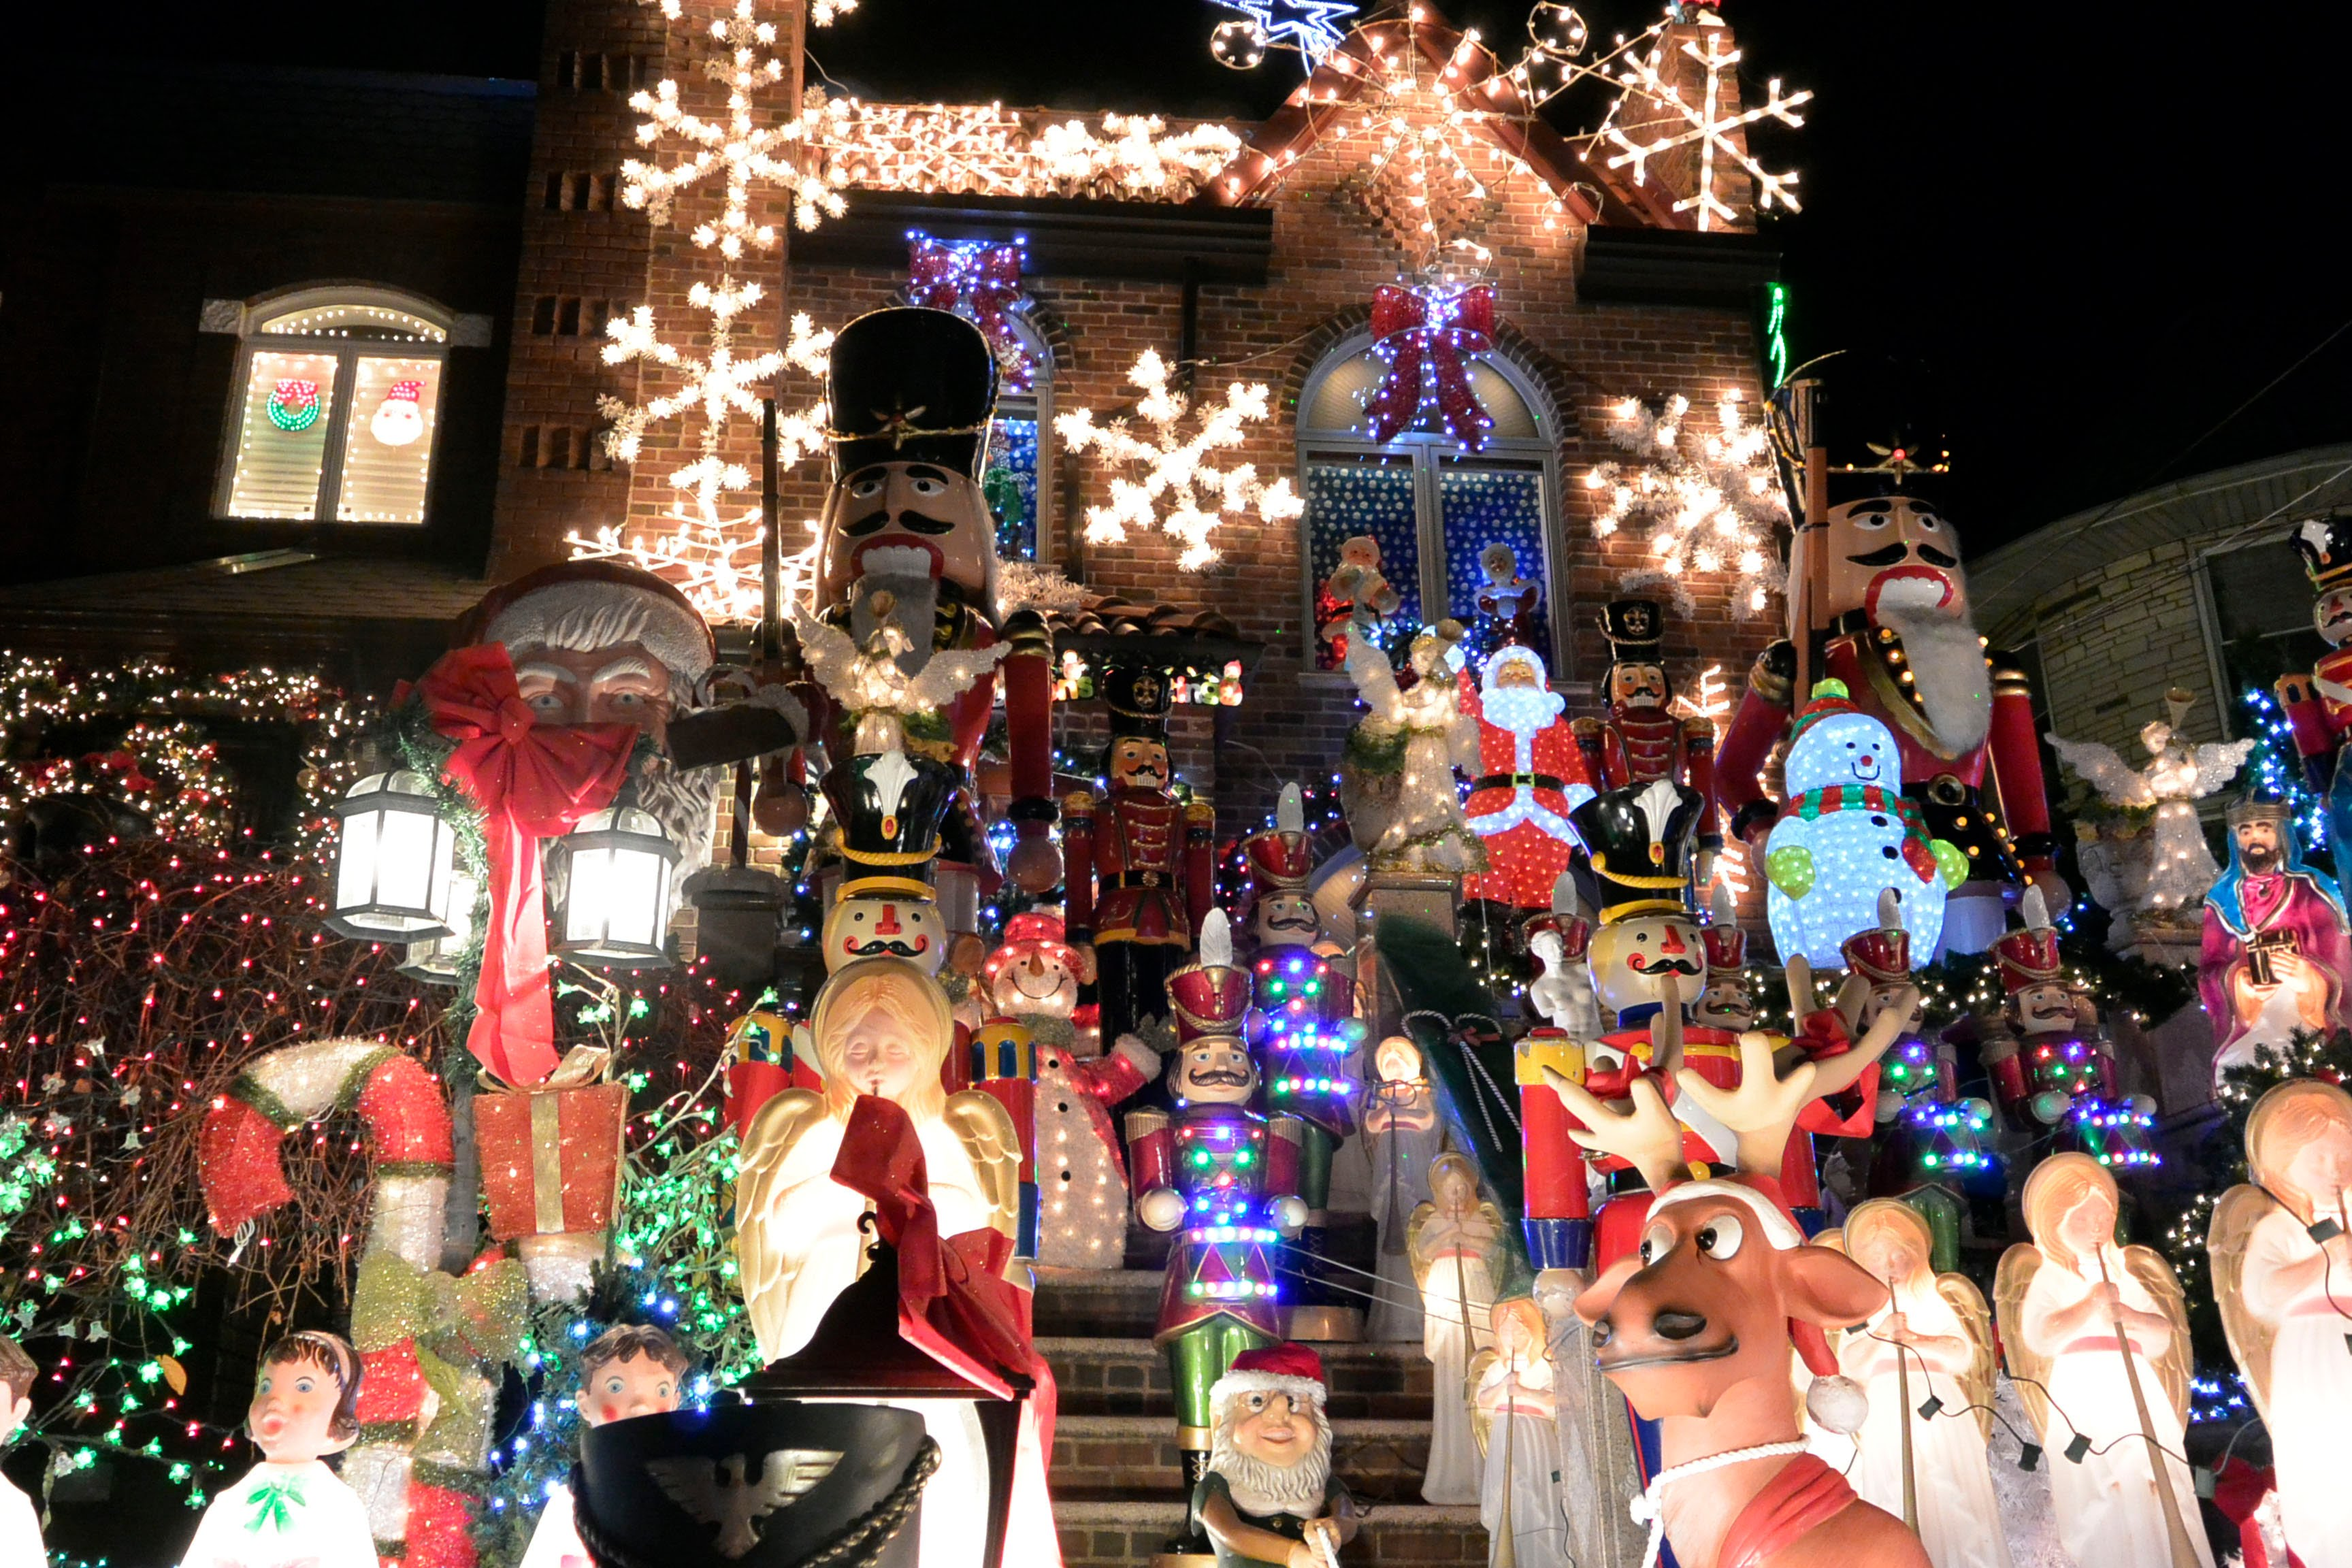 61 Days To Christmas Top 10 Places To Visit In New York City 10 days to christmas 61 Days To Christmas: Top 10 Places To Visit In New York City 🎄 61 Days To Christmas Top 10 Places To Visit In New York City 9